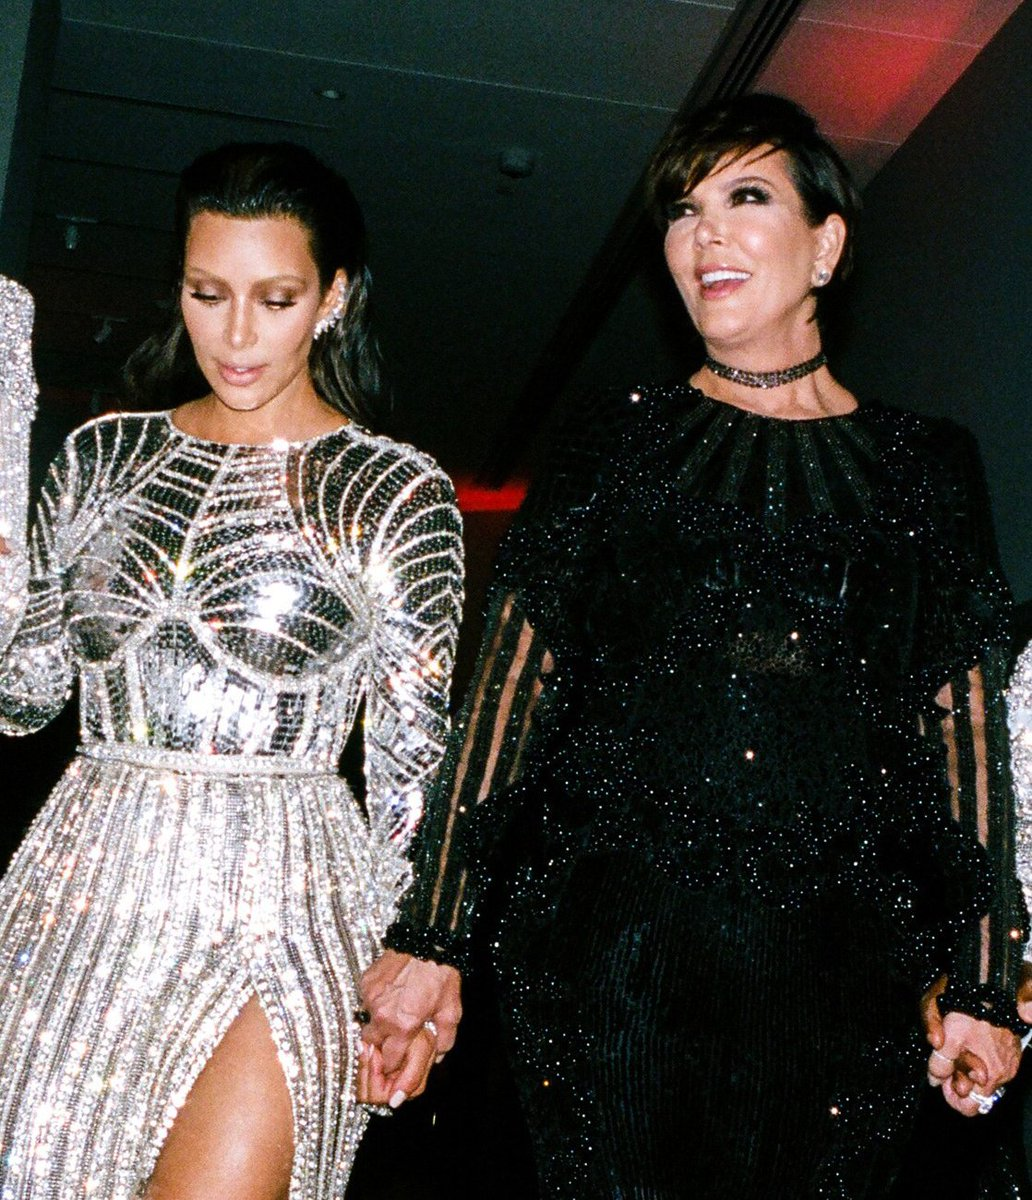 Dont forget to register for our second annual #ForcesofFashion conference, featuring discussions with Kris Jenner, Gigi Hadid, Annie Leibovitz, and more! vogue.cm/luA5ZDU